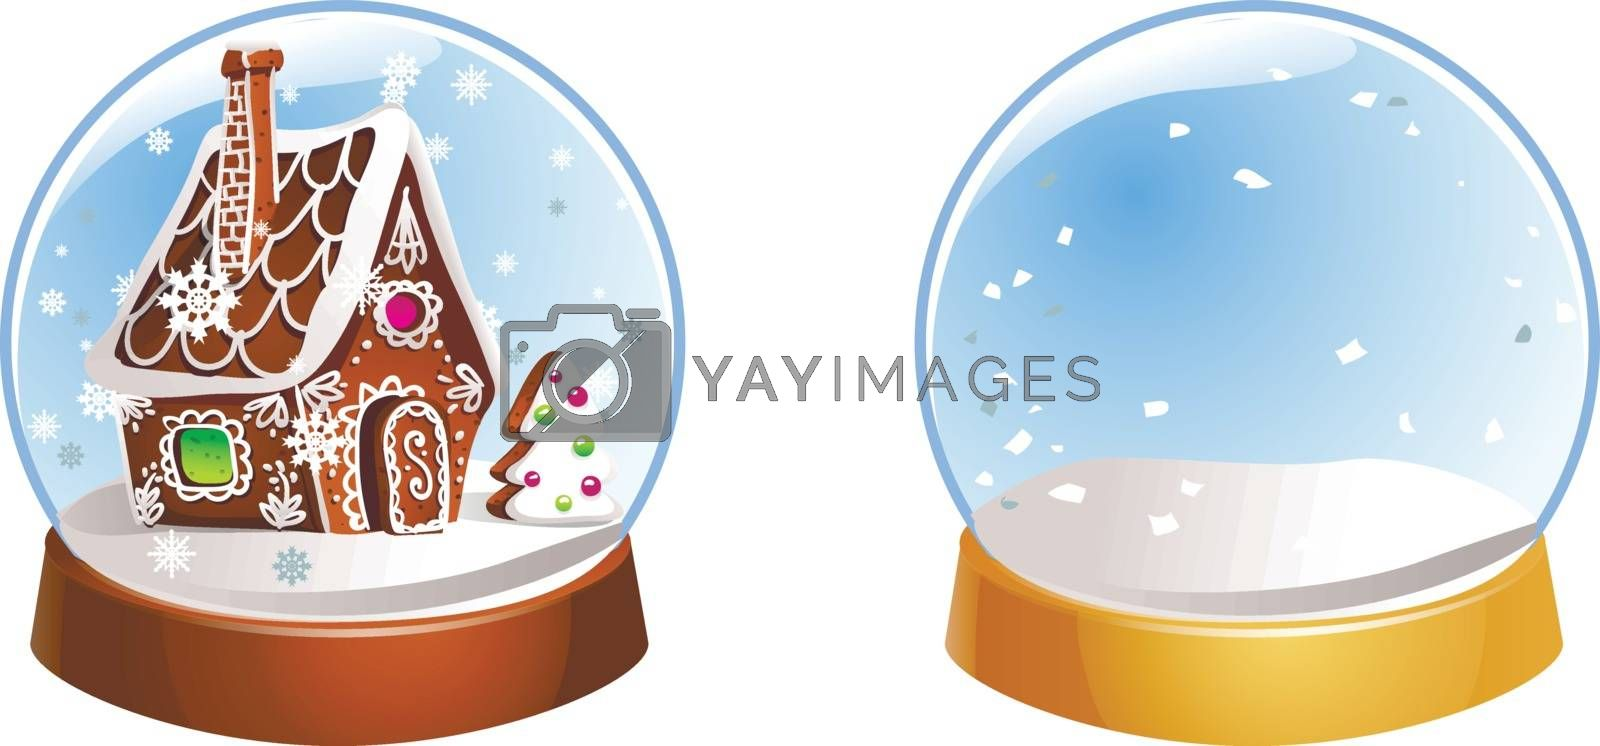 Two Christmas snow globes with snowflakes isolated on white background. Vector illustration. Winter in glass balls